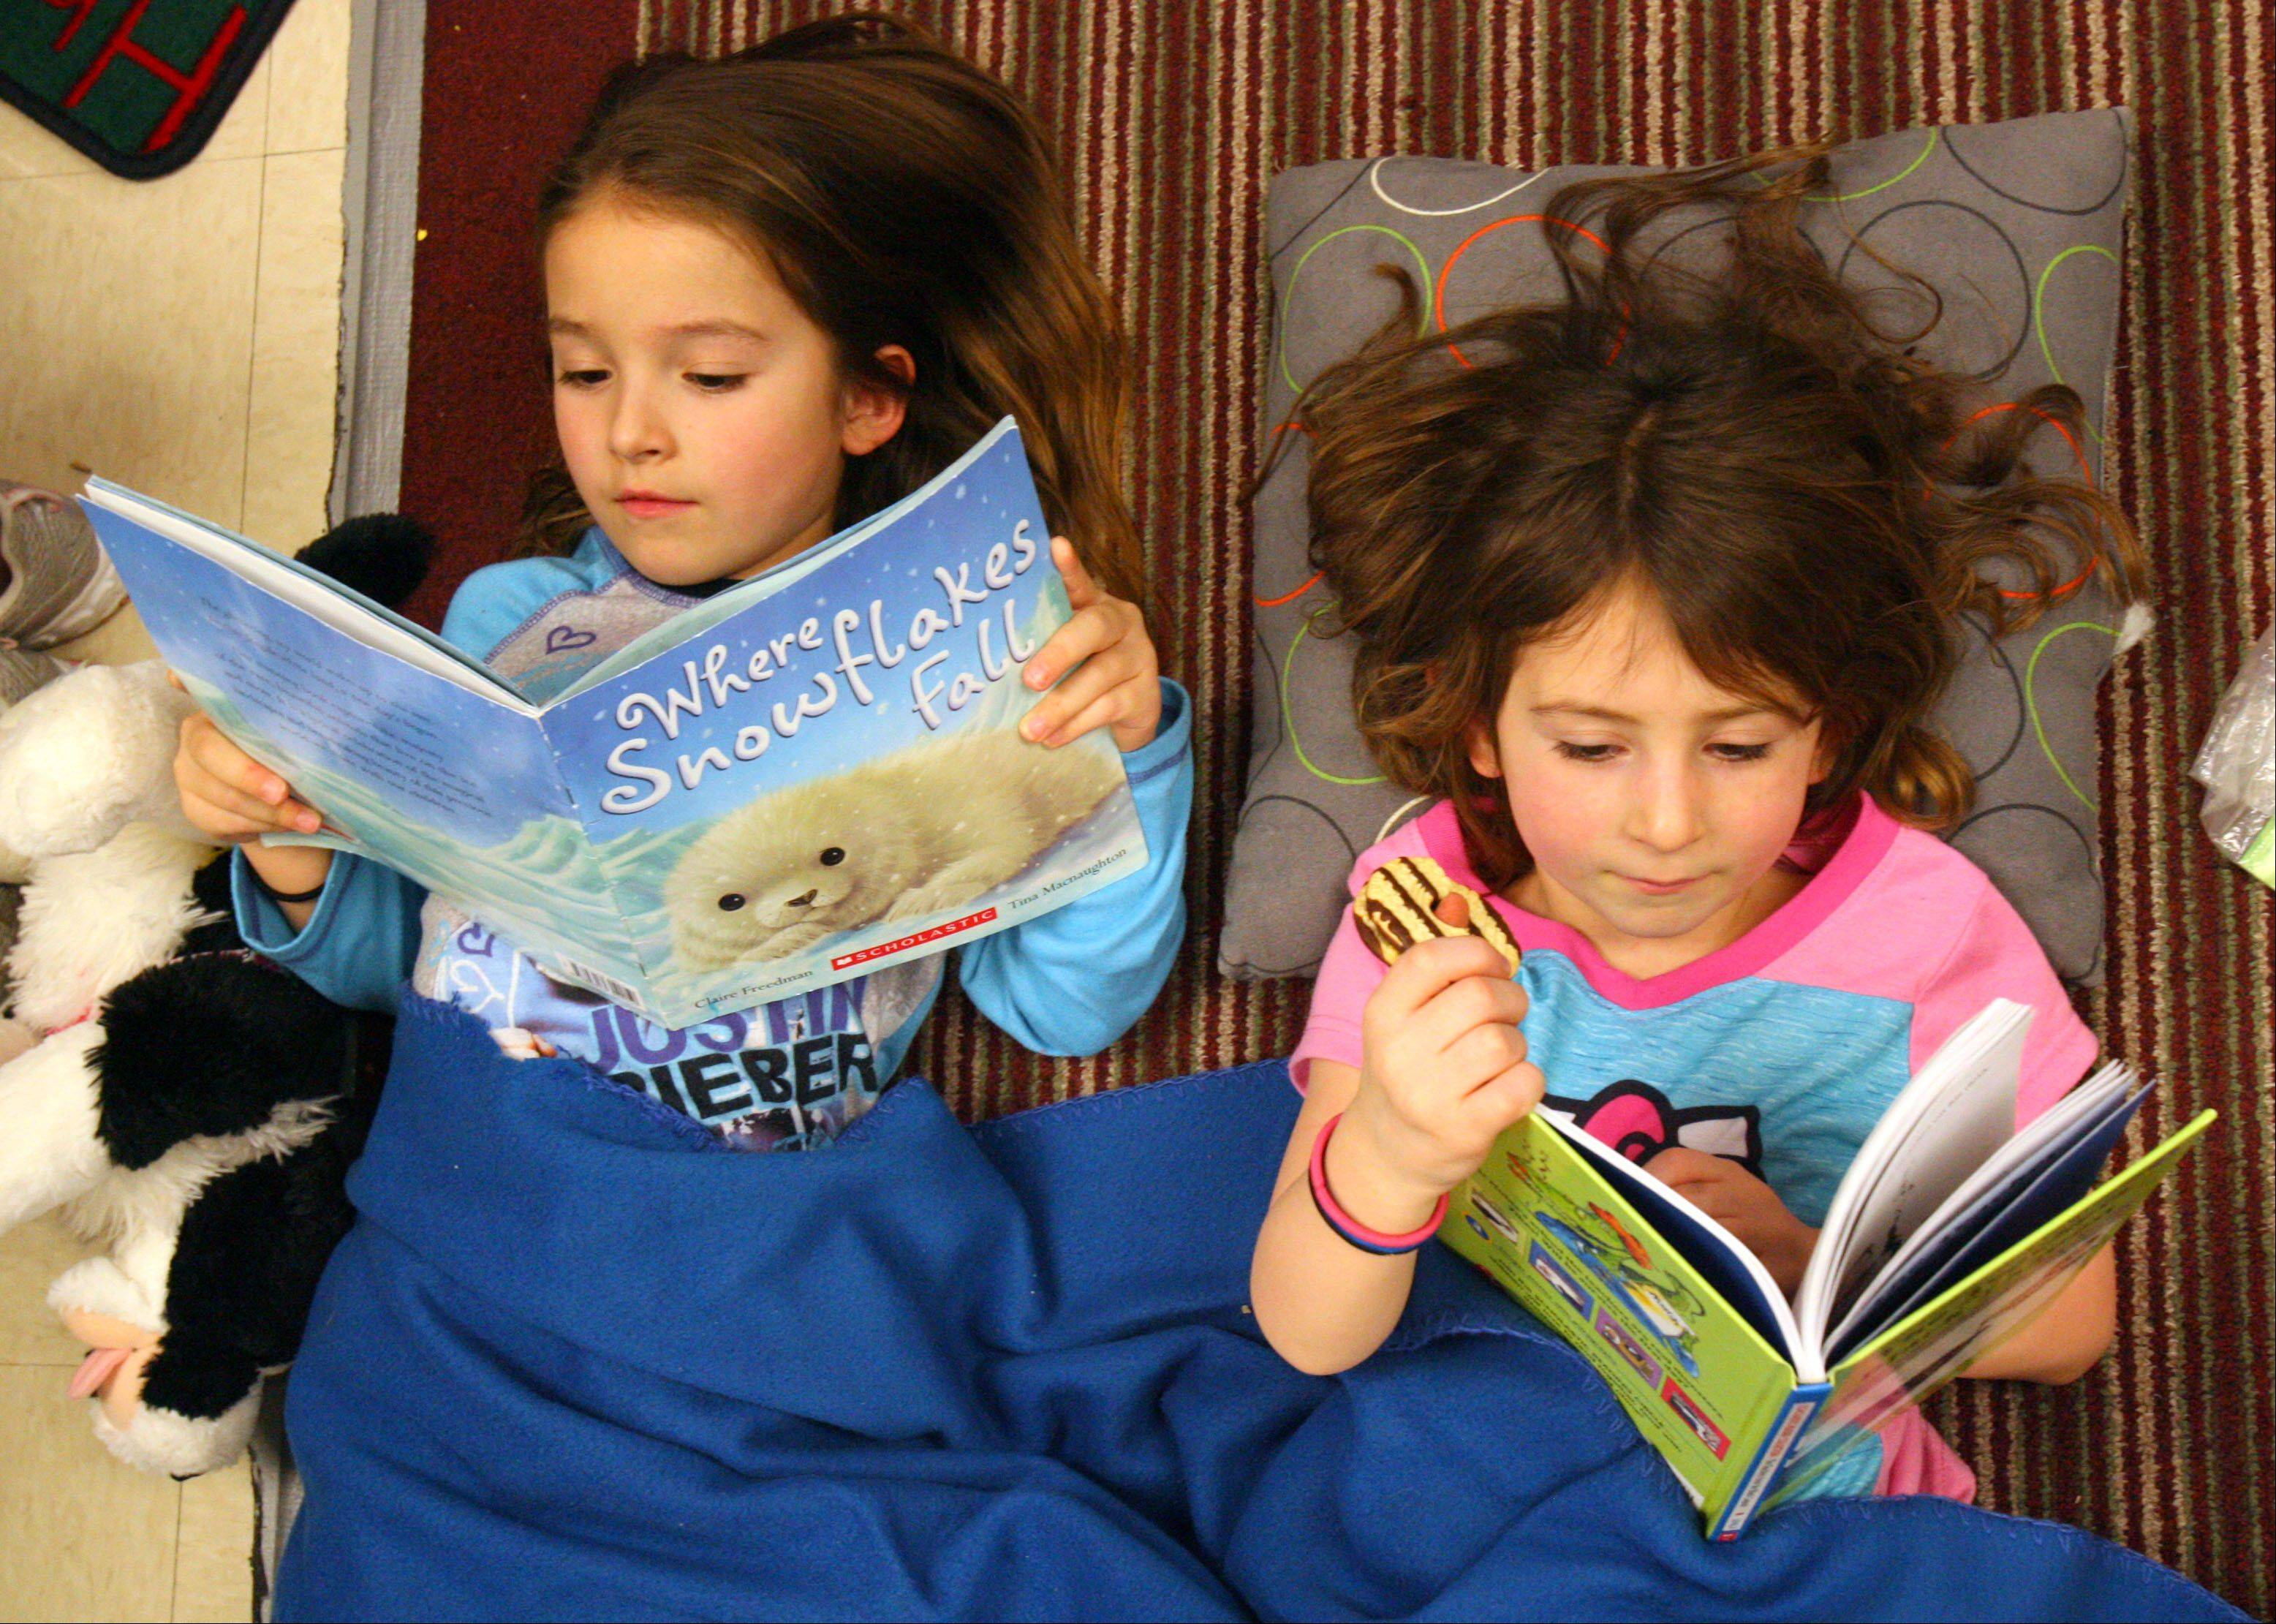 First grade students Daniela Warrensford, left, and Katie Polisson read in their pajamas as Hawthorn Elementary South held their Read 2013 marathon, reading for 2,013 seconds Friday in Vernon Hills.